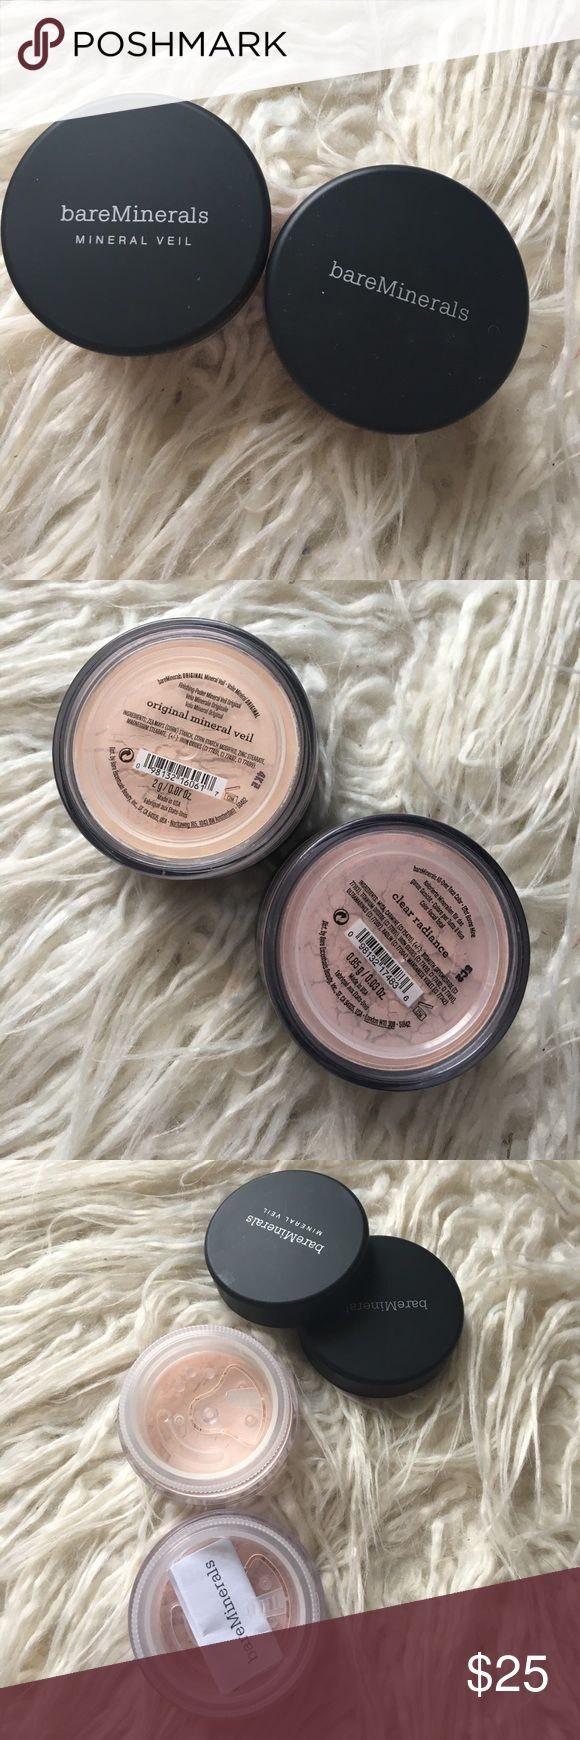 Bare Minerals Mineral Veil NIB bare minerals mineral veil and clear radiance both are brand-new and will ship same day payment is made bareMinerals Makeup Face Powder